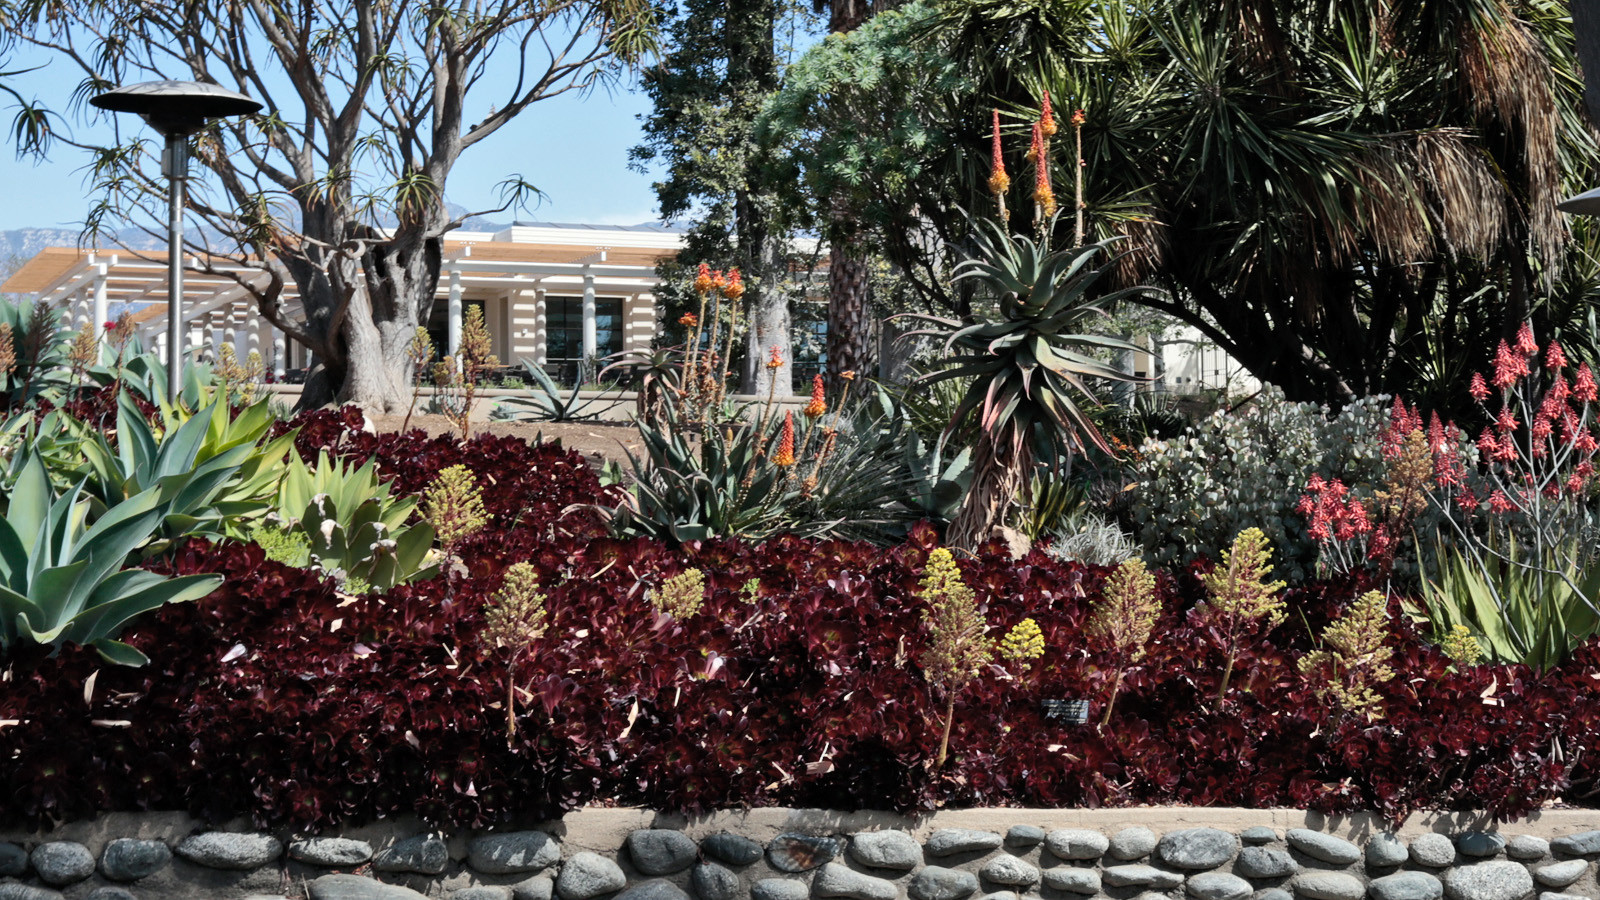 Library art collections and botanical gardens on saturday will open